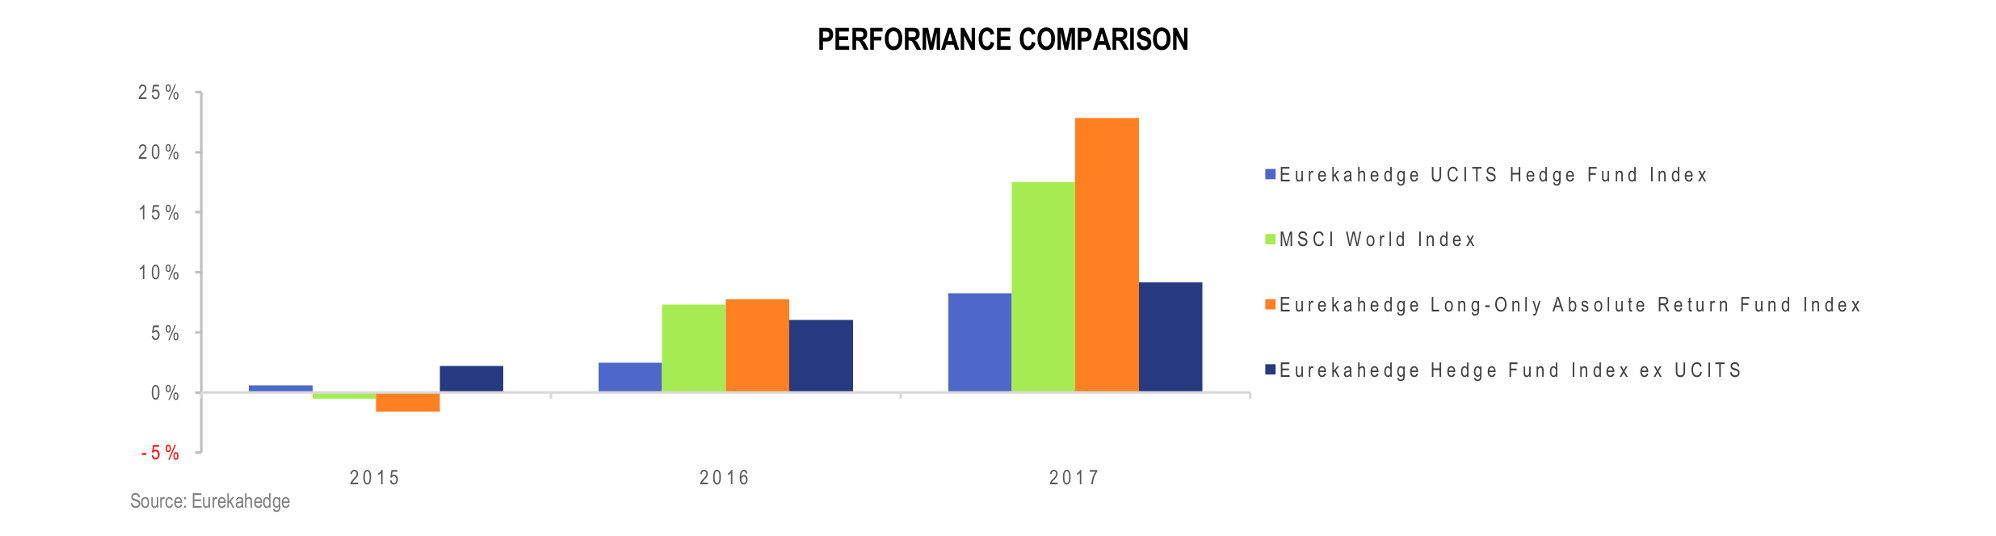 UCITS Hedge Funds Infographic February 2018 - Performance comparison